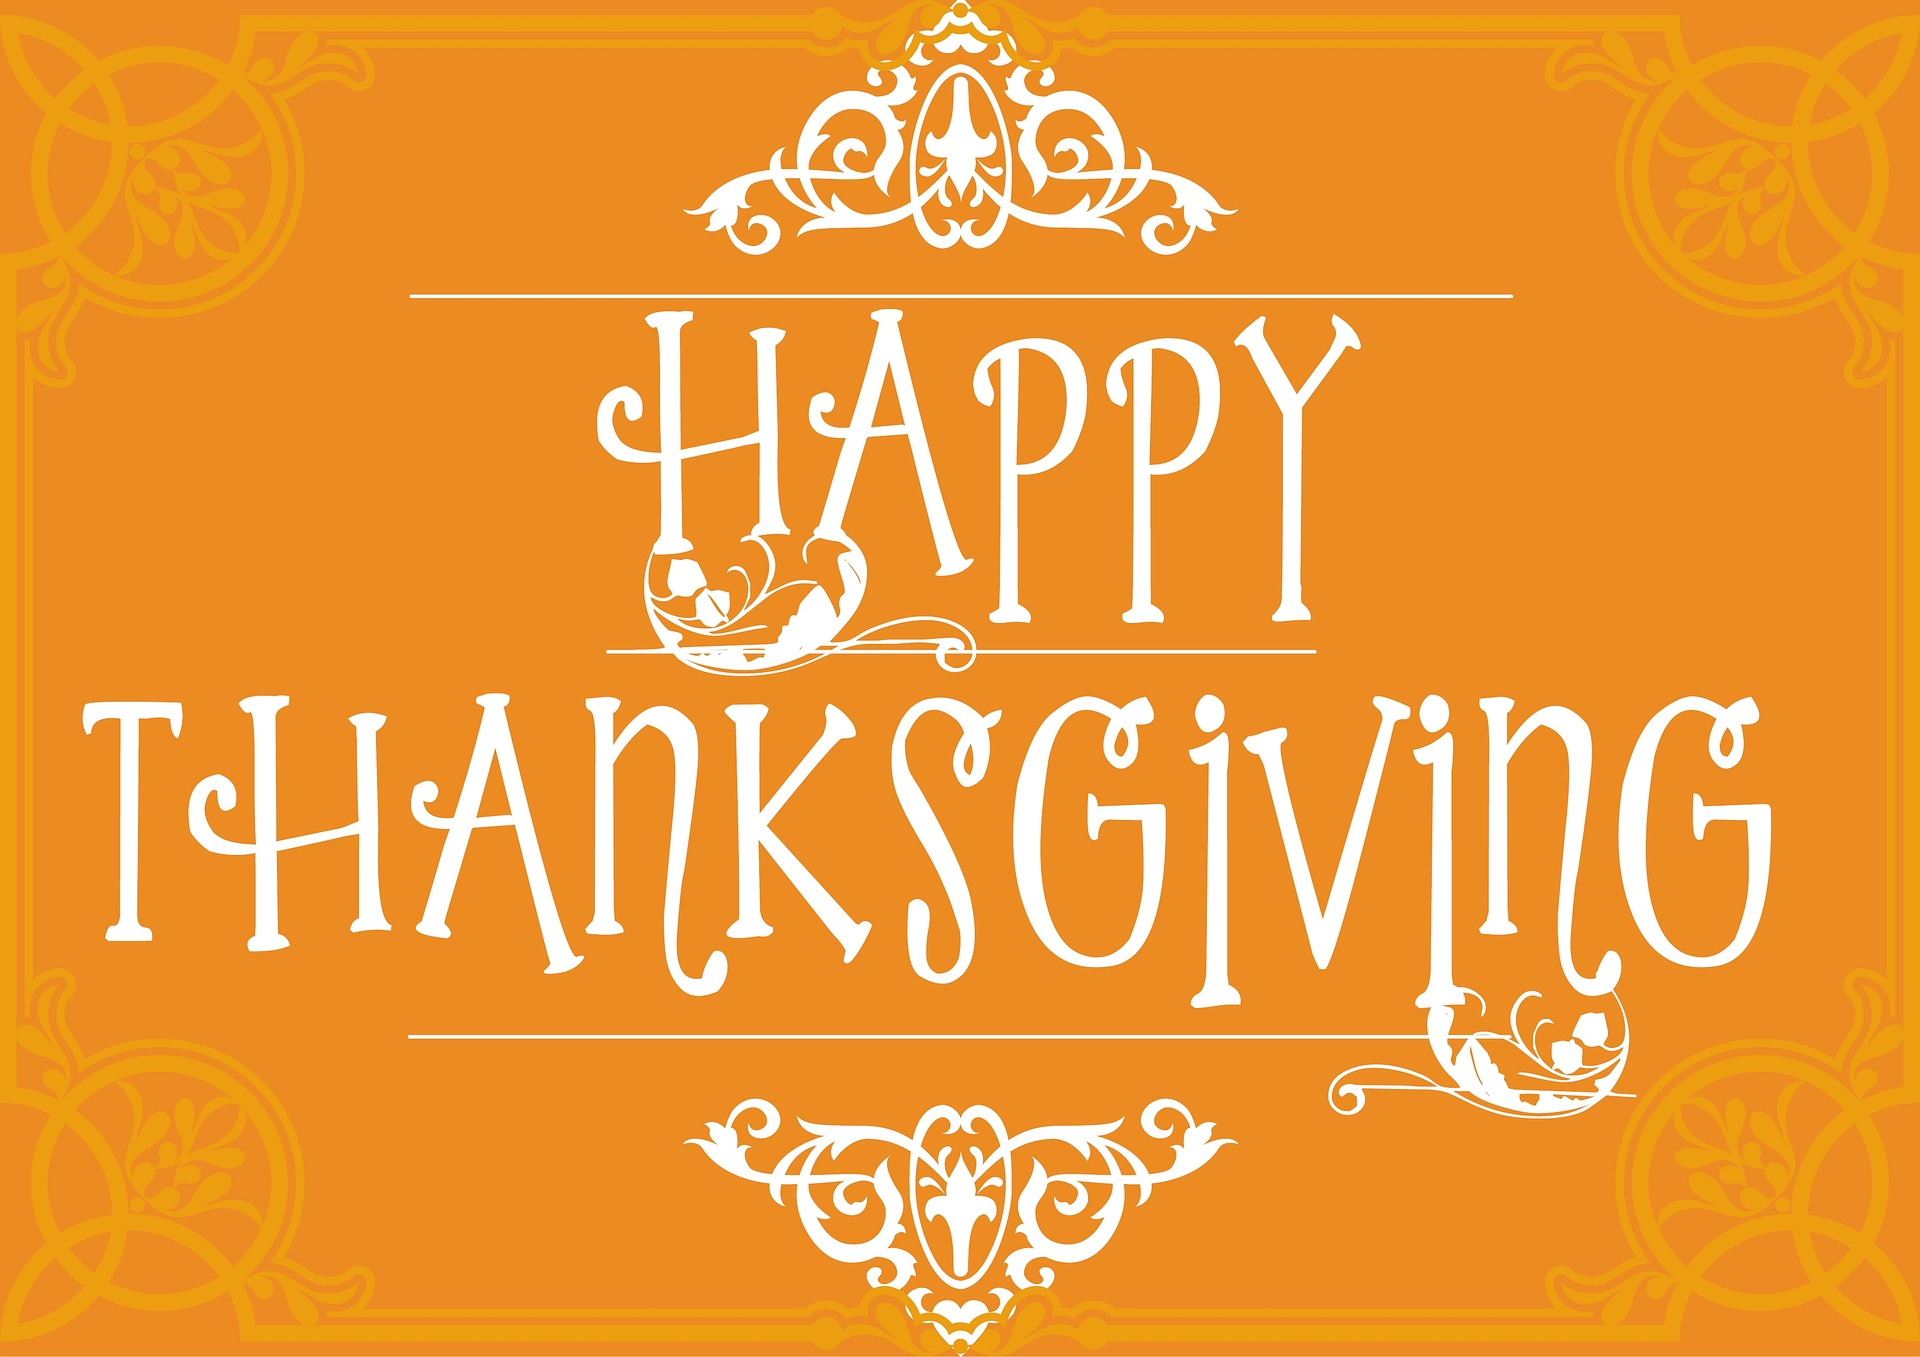 Happy Thanksgiving Quotes For Friends And Family